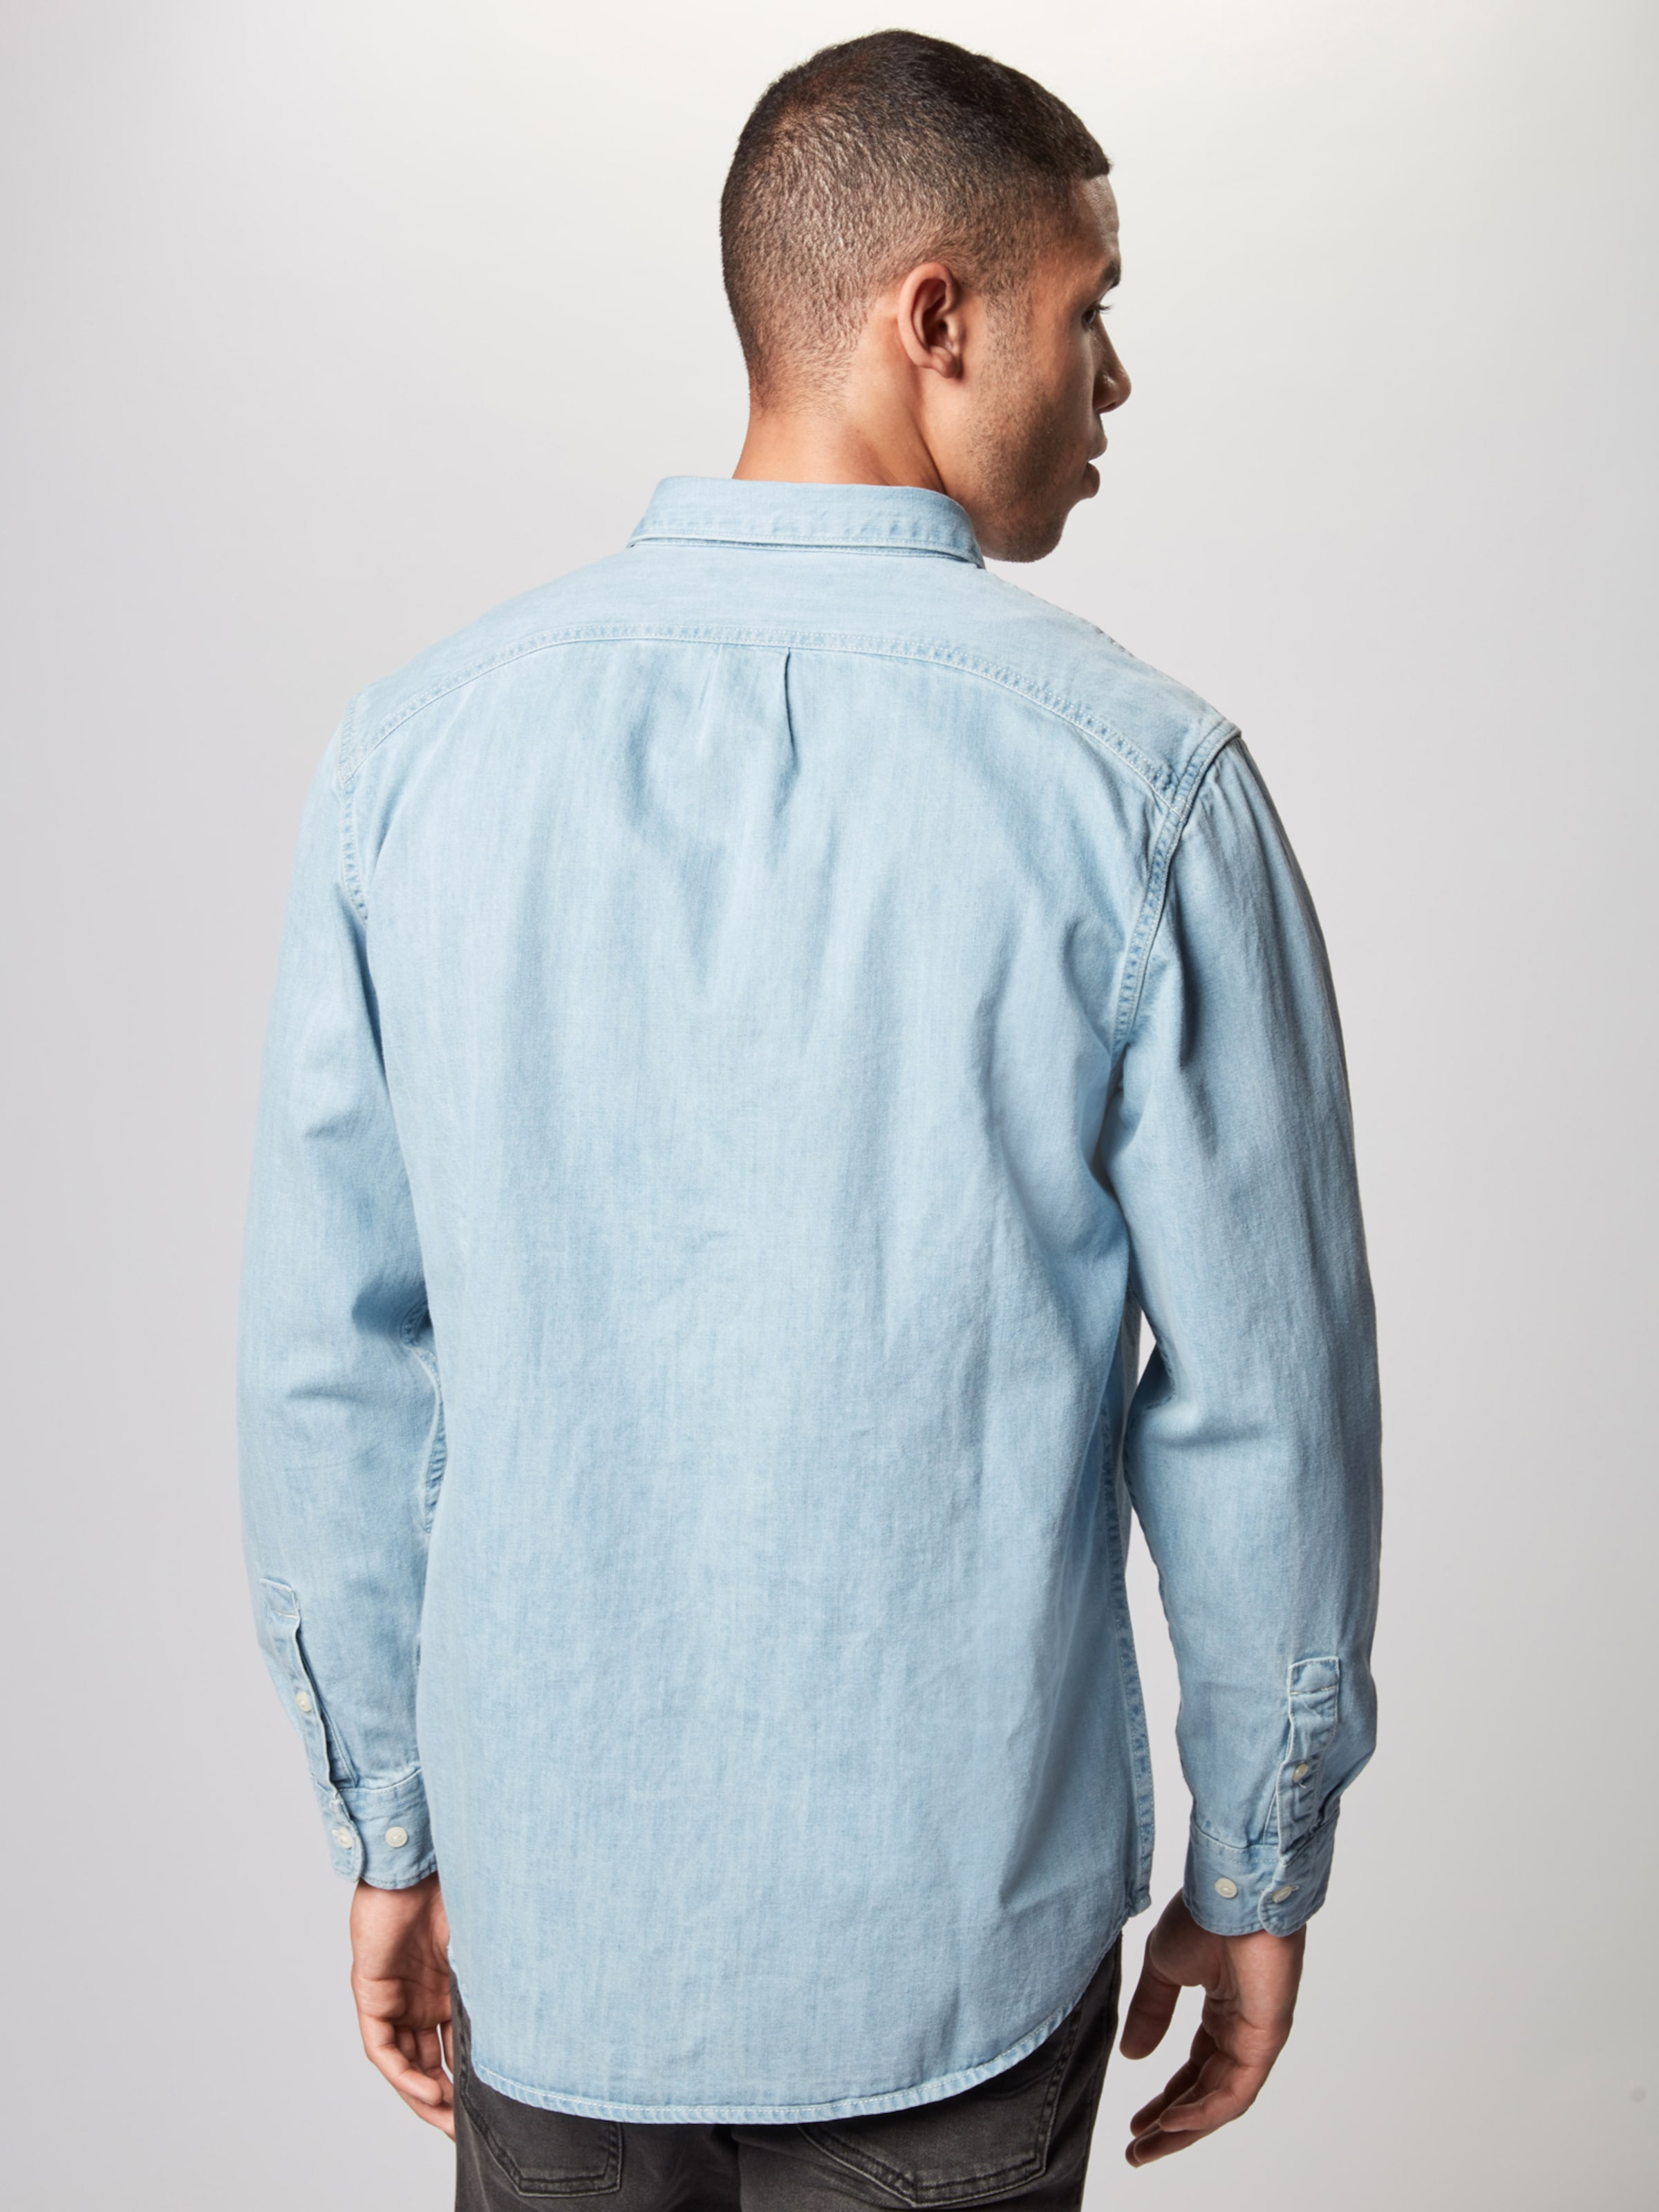 Chemise Pastel En Bleu MarineRouge 'riveted' Lee v0wOmnN8